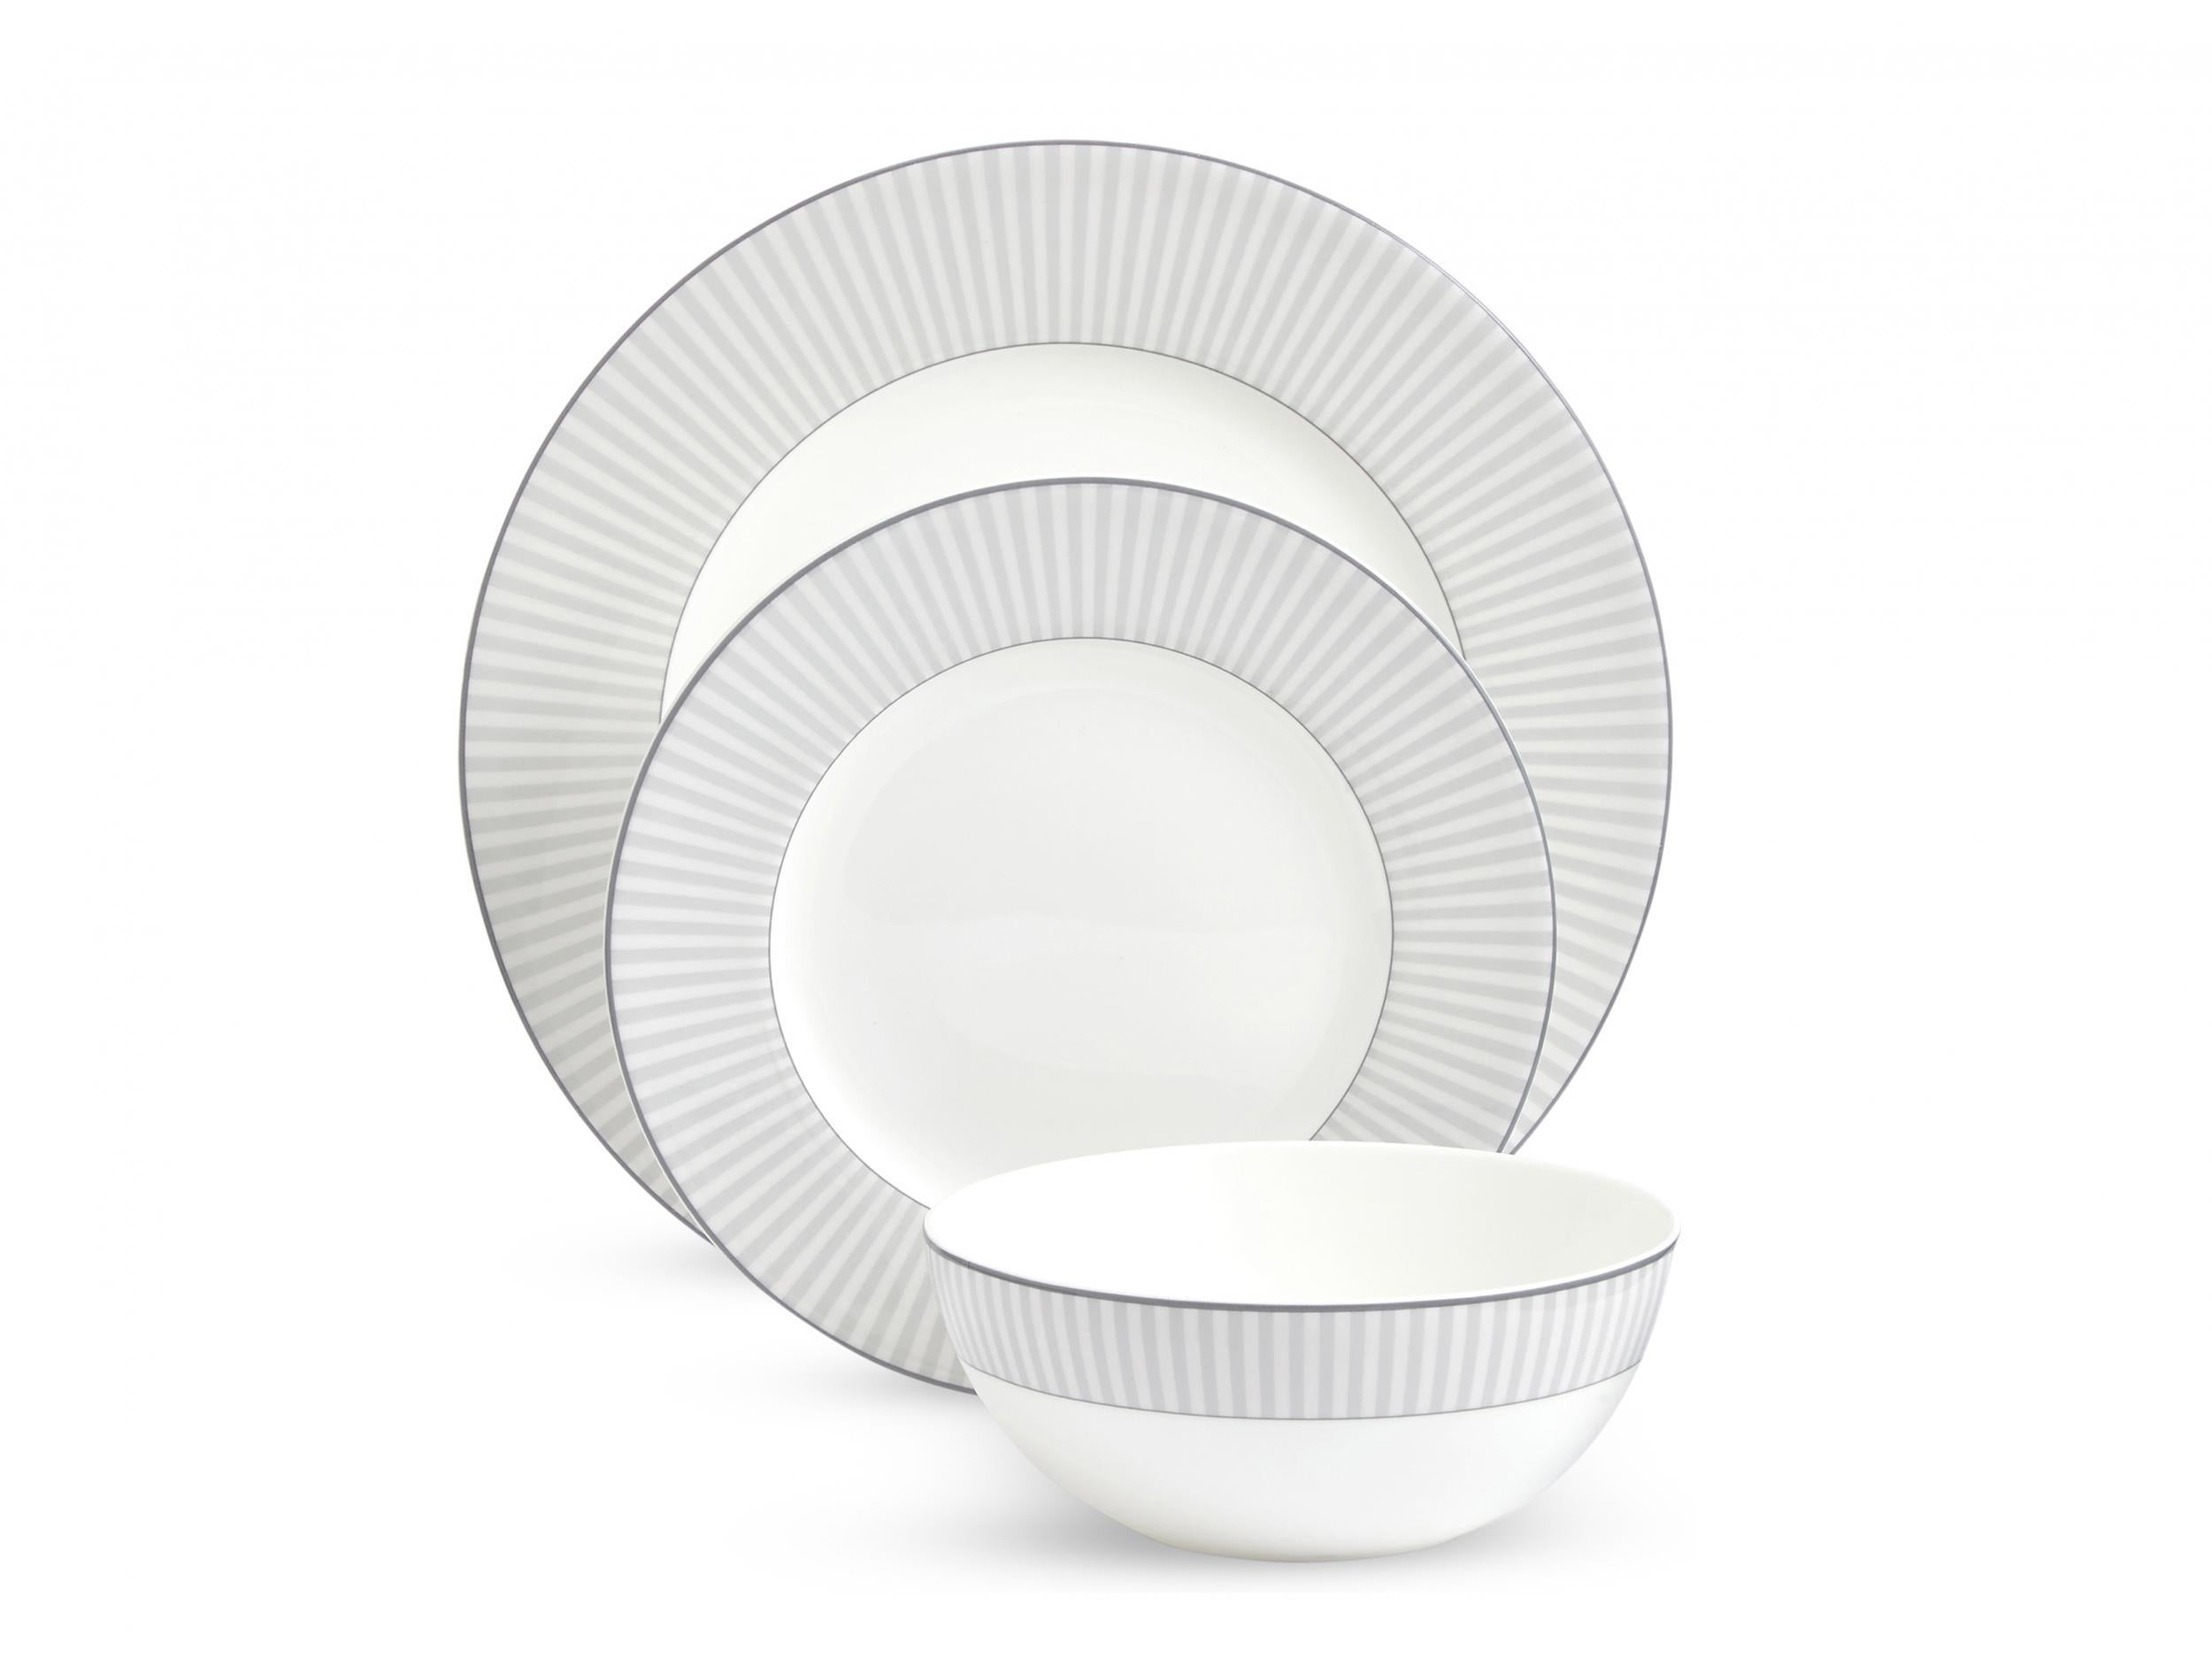 Best plate sets perfect for any dinner party